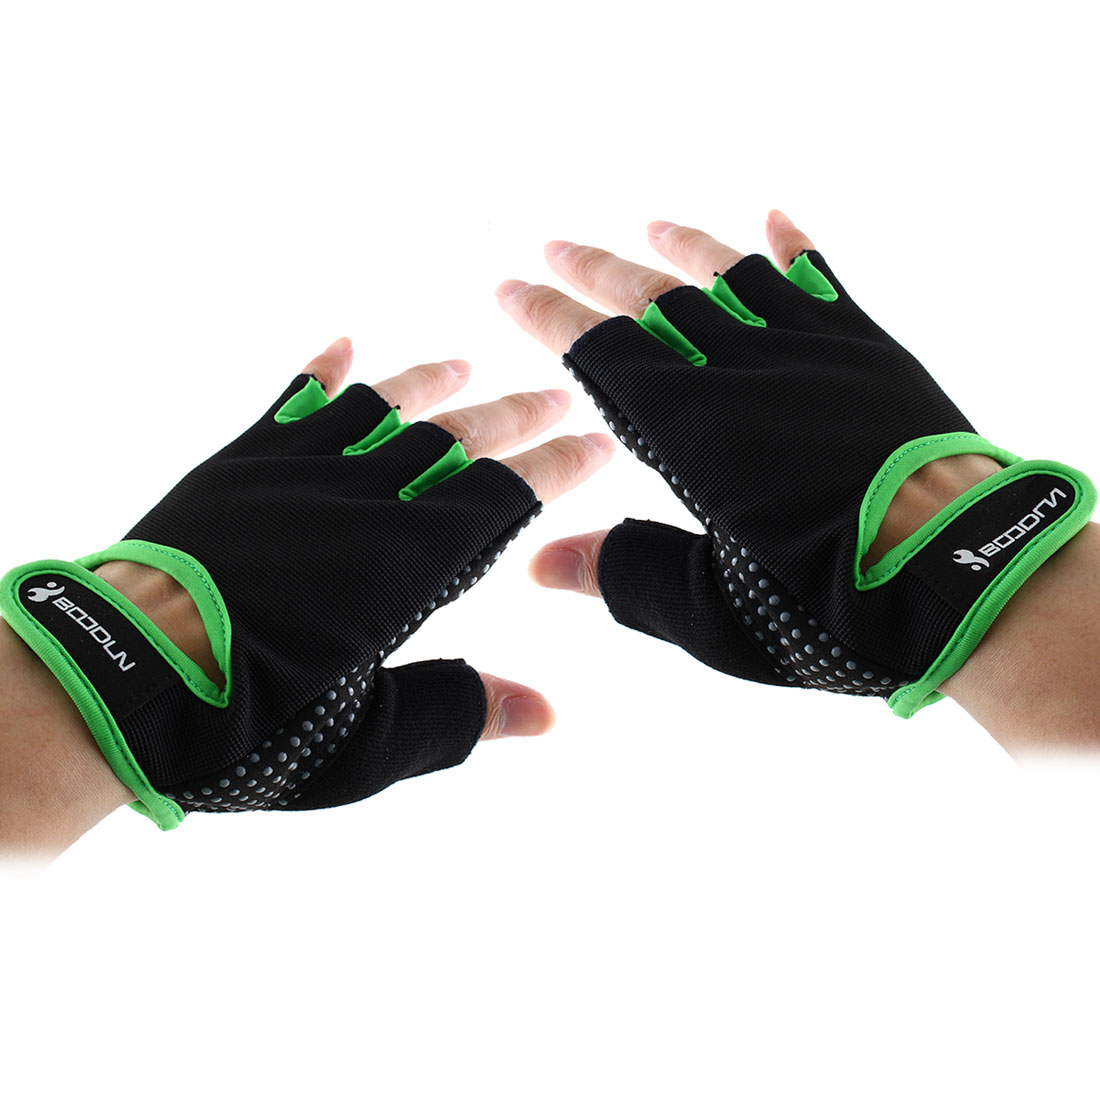 BOODUN Authorized Adult Unisex Spandex Adjustable Sports Training Workout Mittens Fitness Gloves Green M Pair